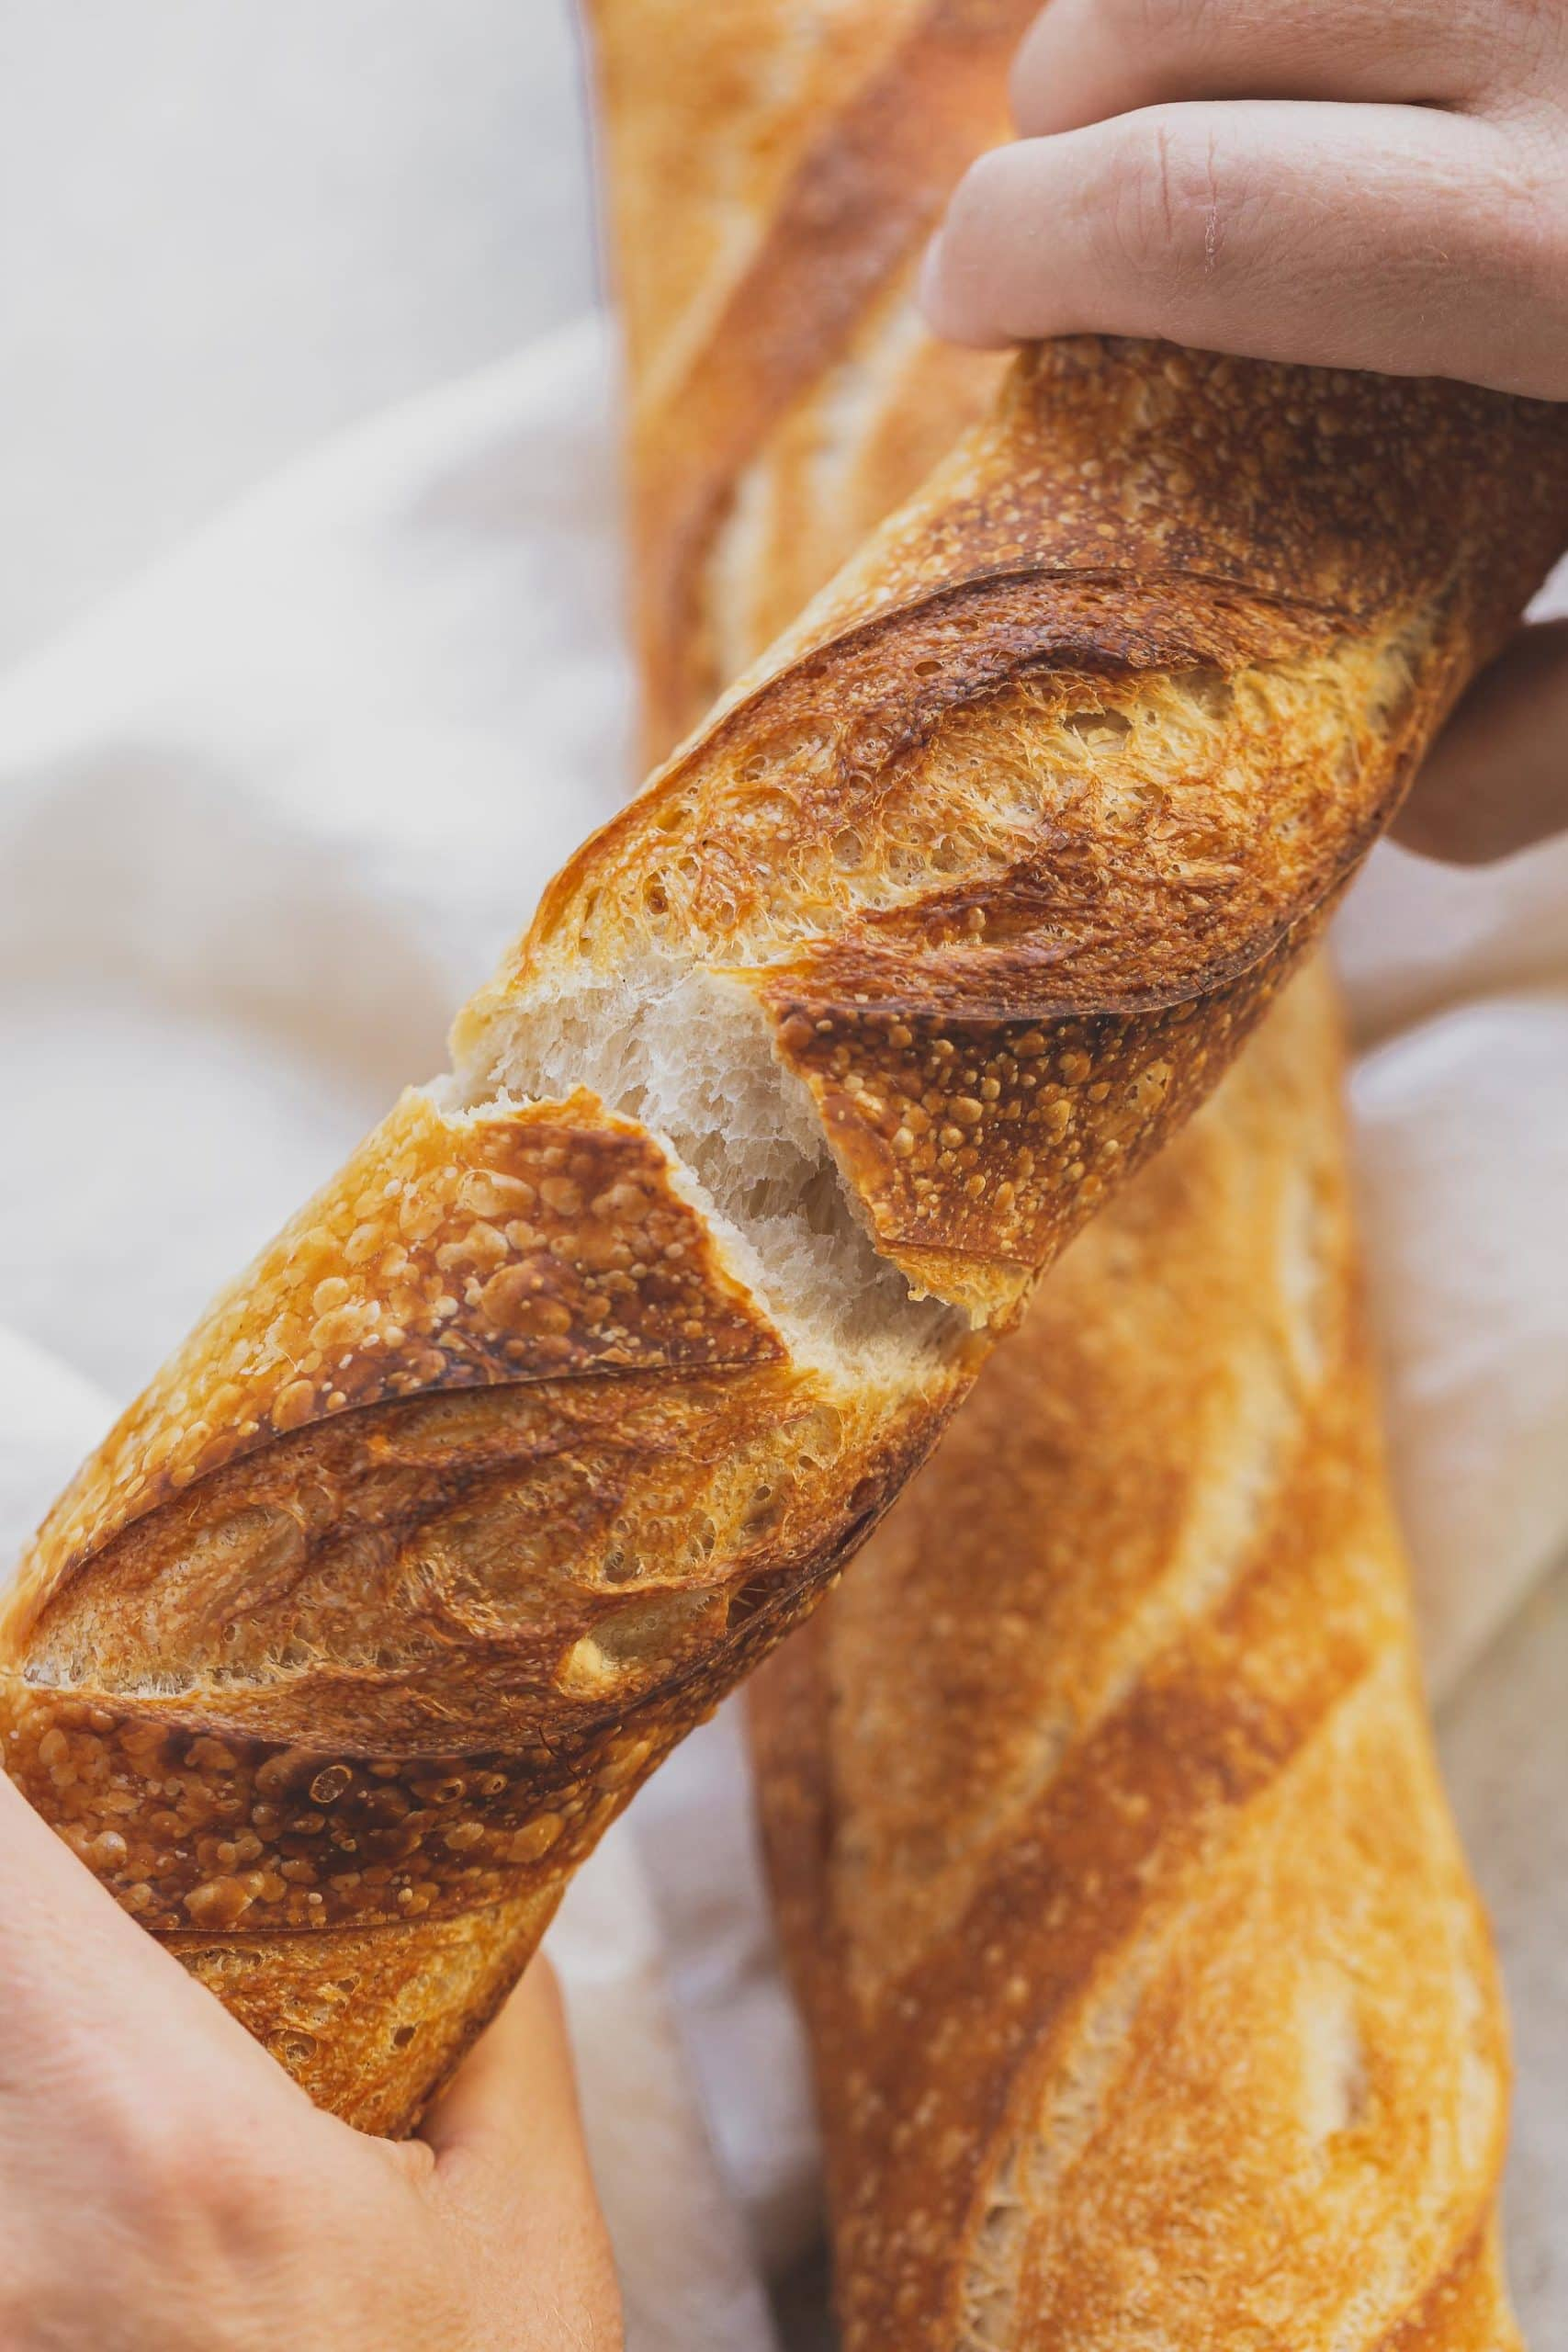 Two loaves of baguette bread. They are criss cross on top of each other, and the top loaf is broken to show the soft interior.